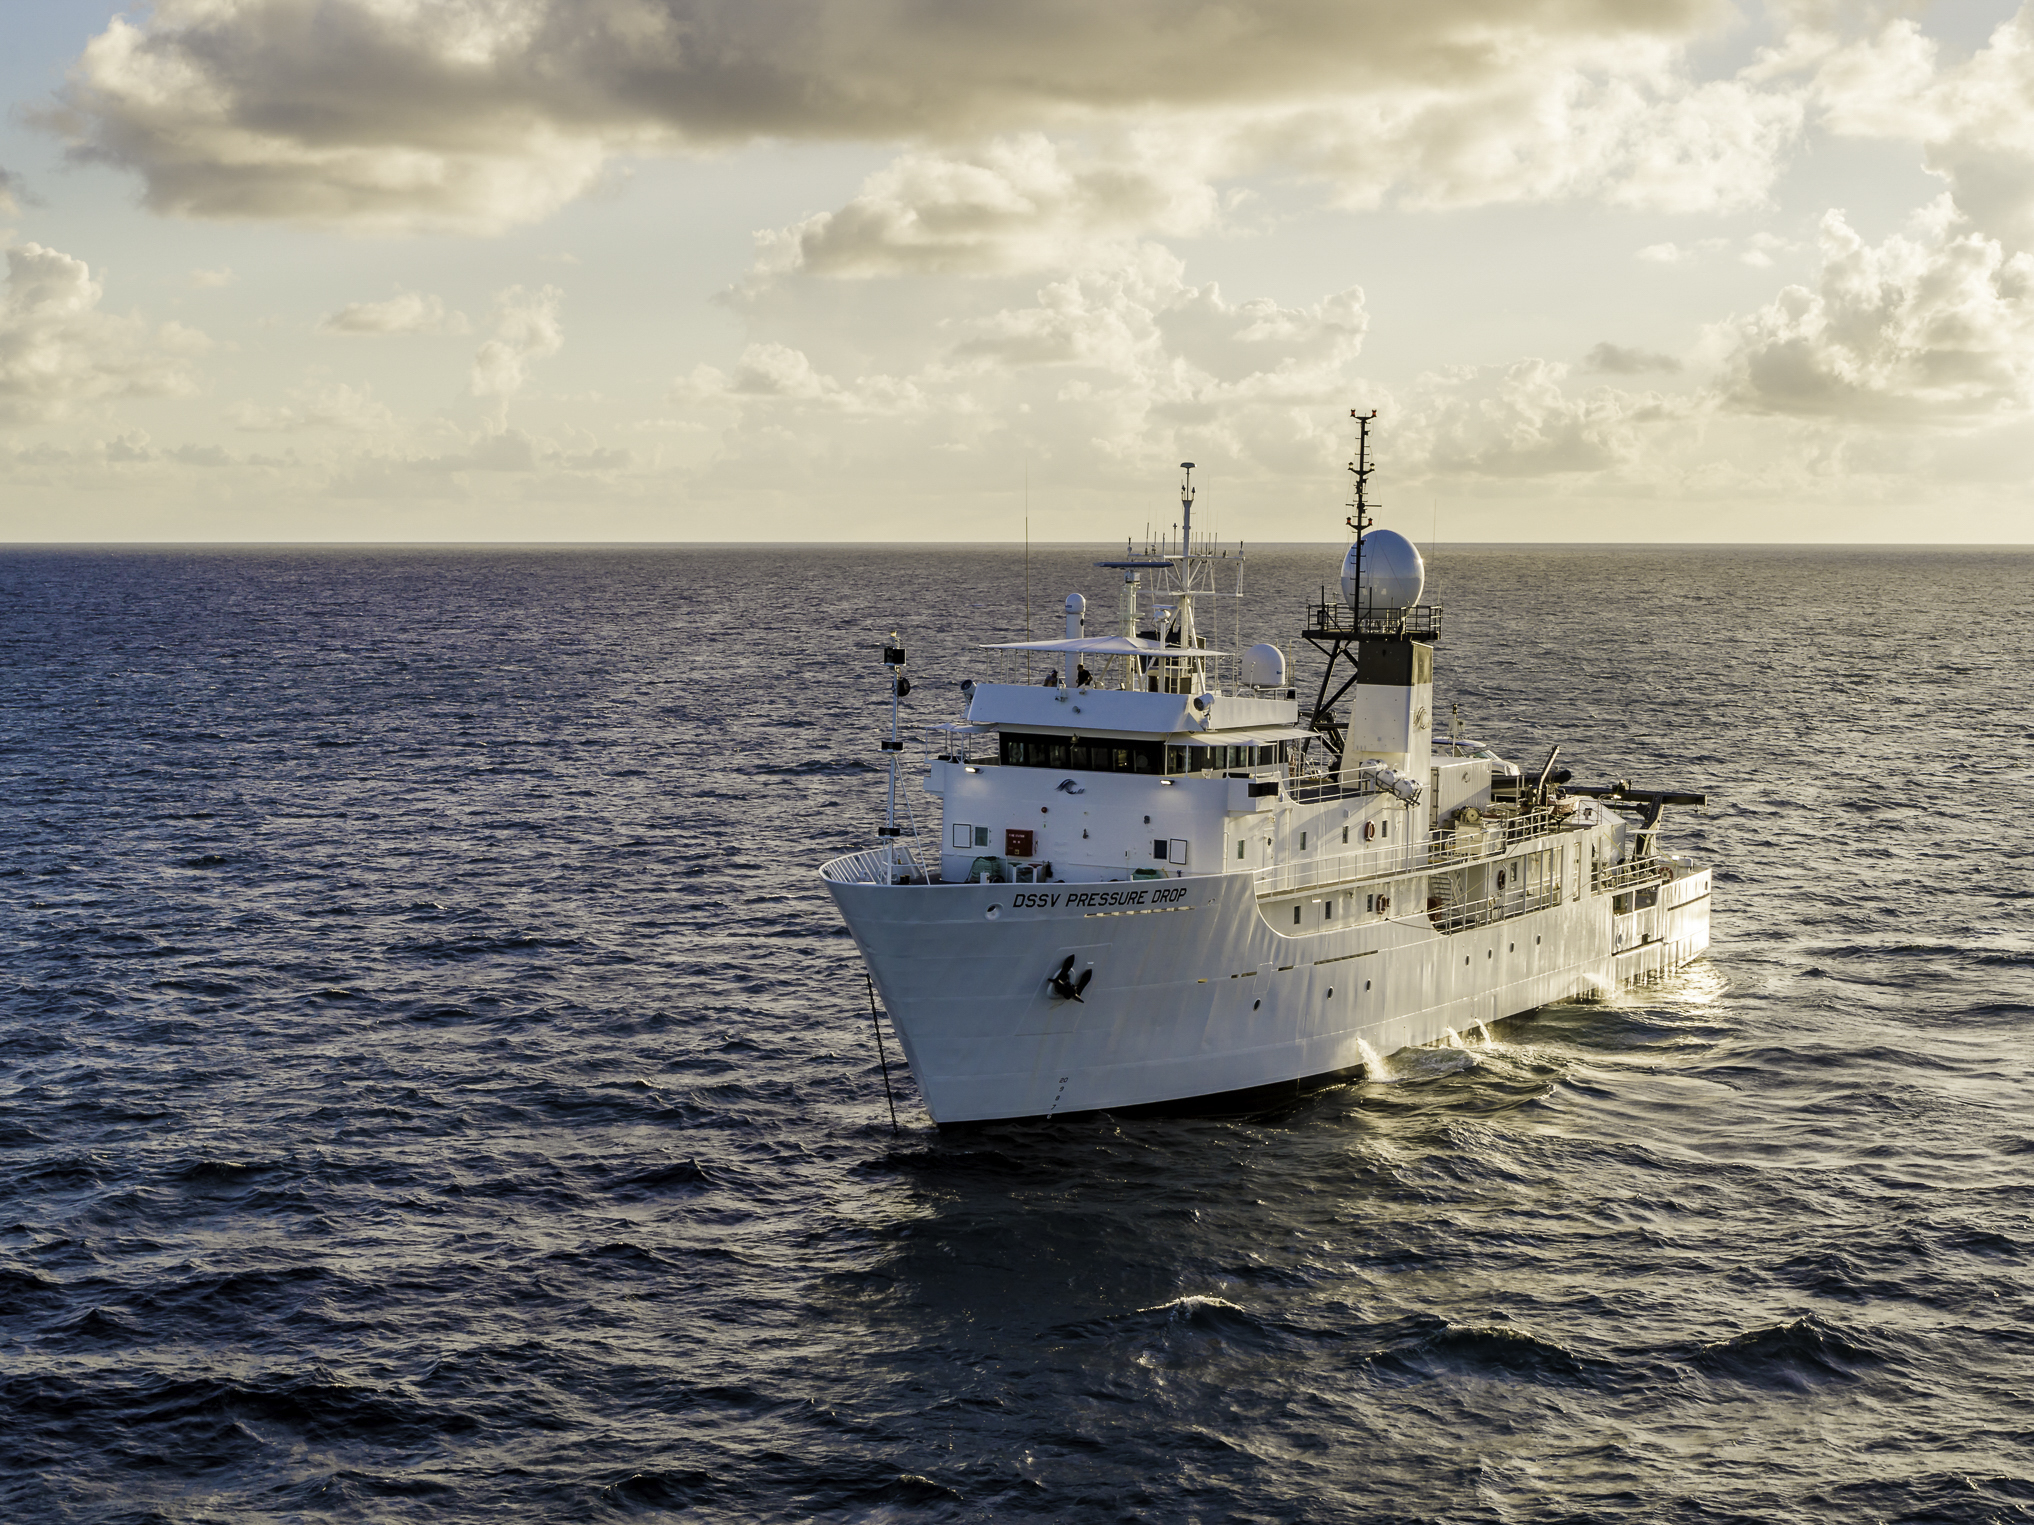 DSSV PRESSURE DROP, an ex-US Navy ship that's been refitted for the FIVE DEEPS expedition. ©EYOS Expeditions